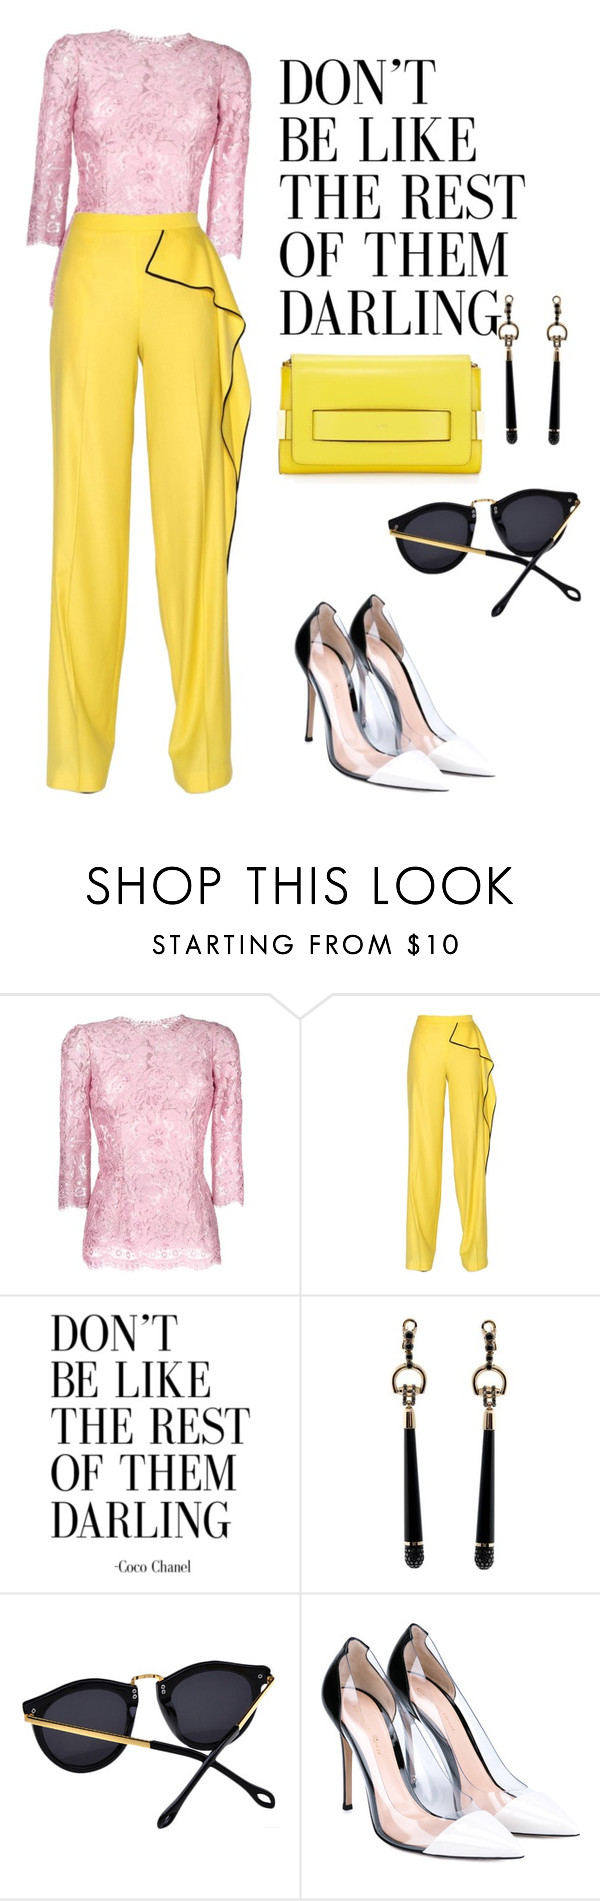 """""""NYFW"""" by omahtawon ❤ liked on Polyvore featuring Dolce&Gabbana, Vionnet, Gucci, Gianvito Rossi and Chloé"""